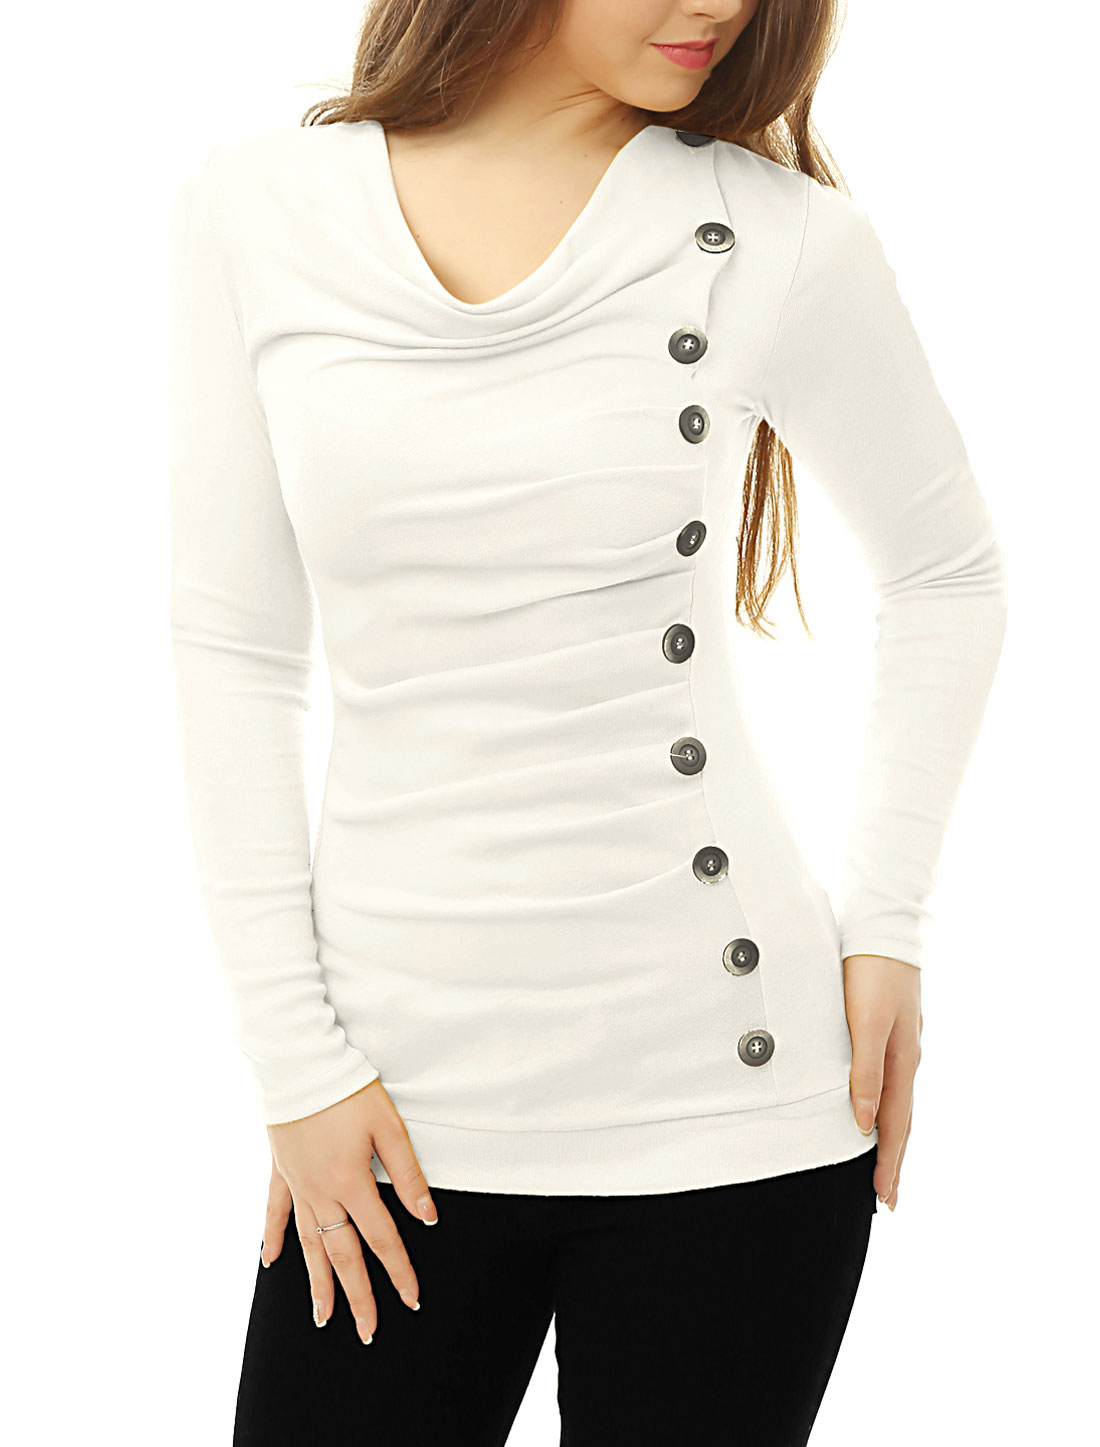 Women Cowl Neck Long Sleeves Buttons Decor Ruched Top White L